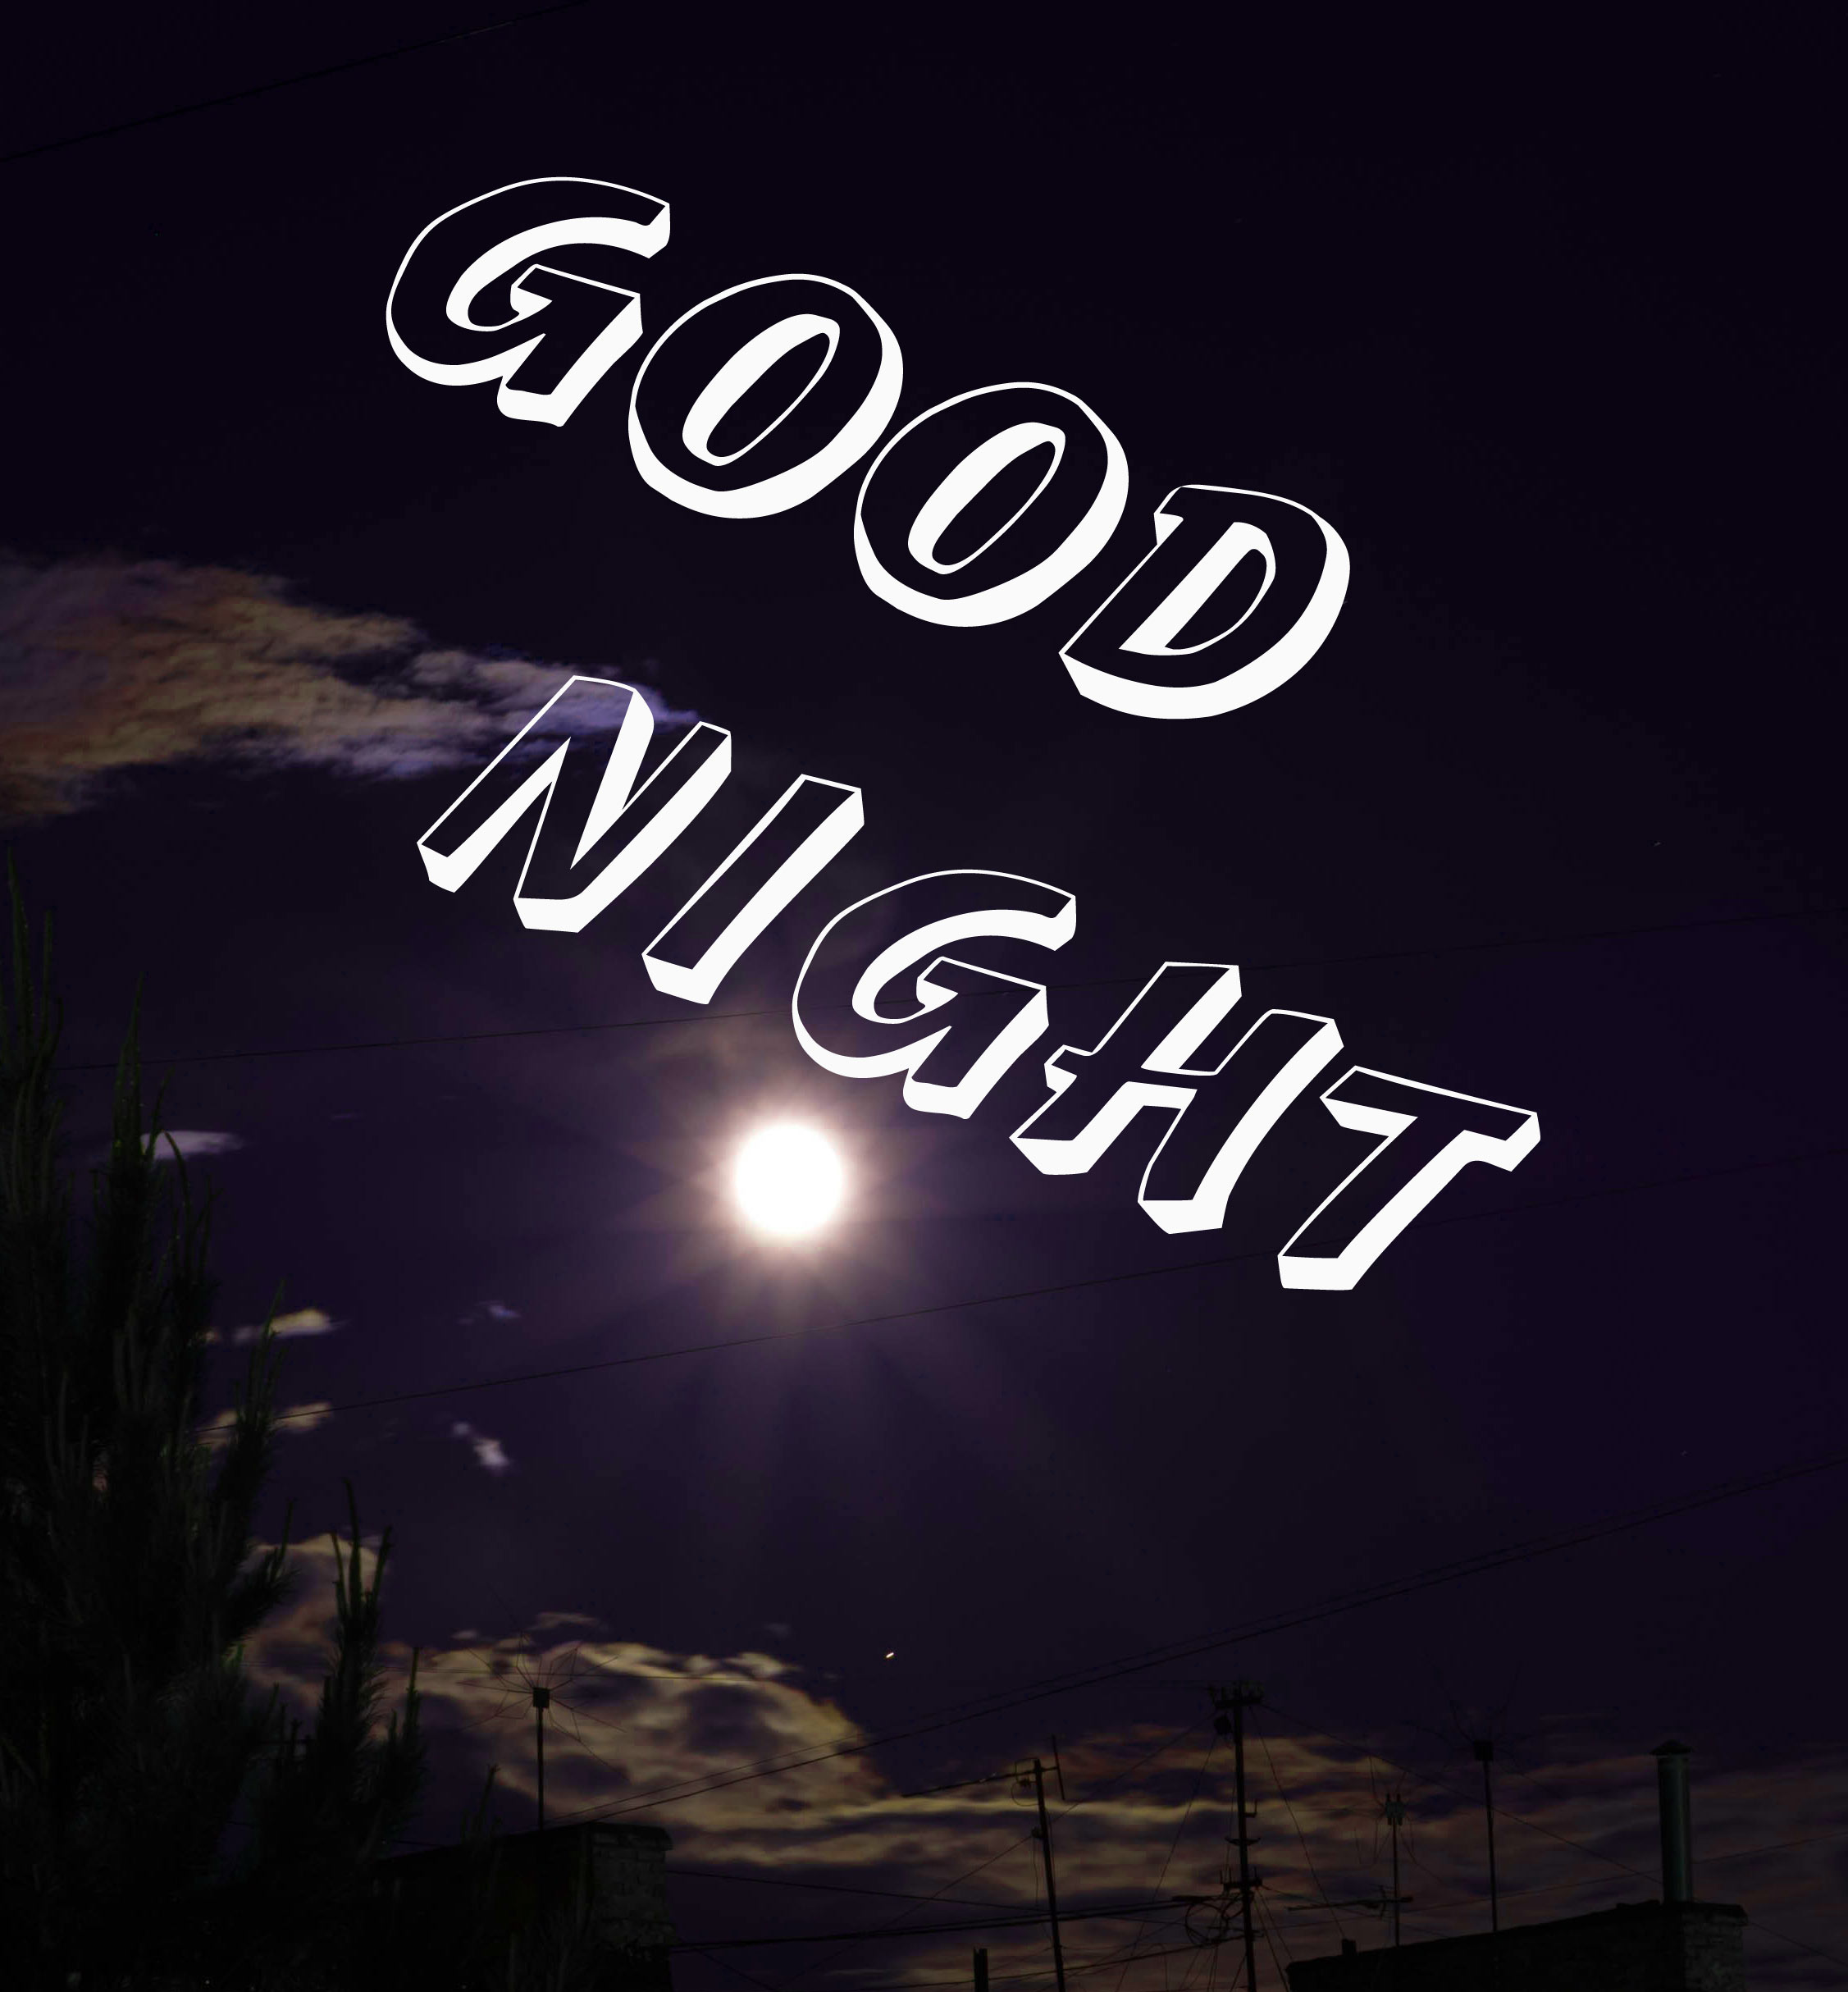 3D Good Night Images Pics Download